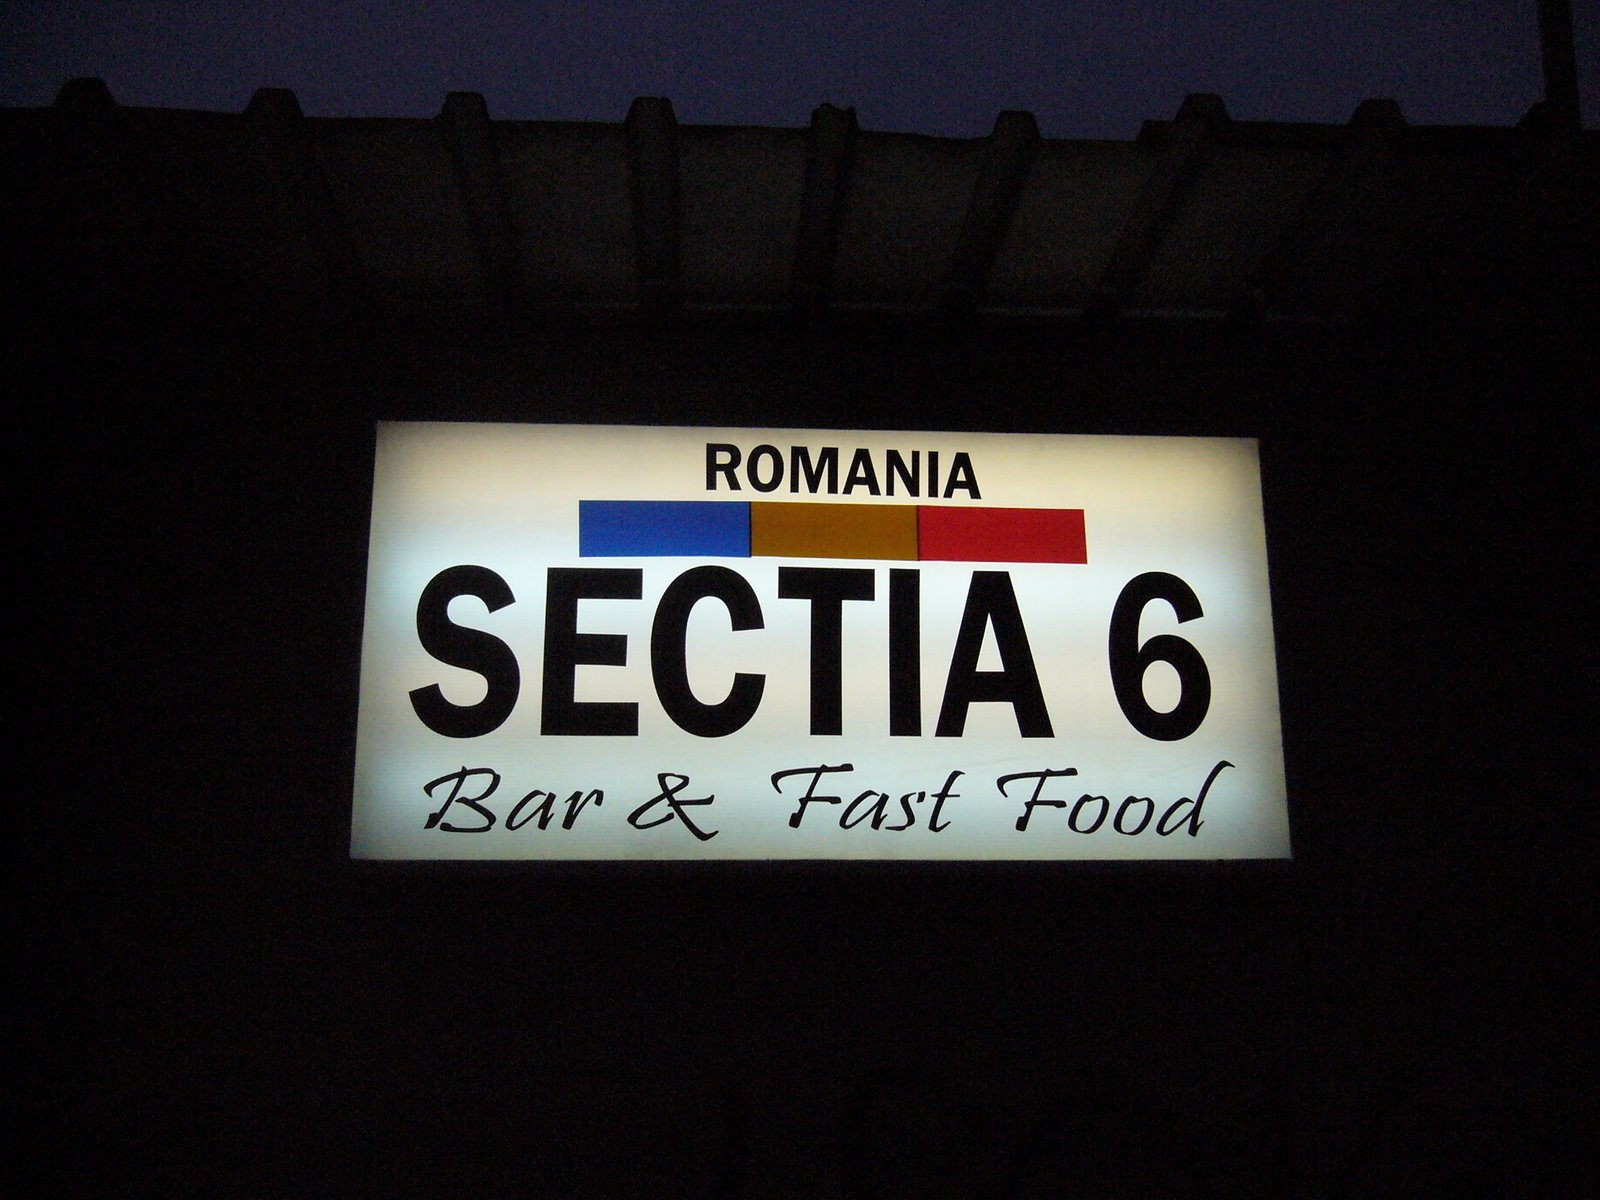 Sectia 6-by MPR